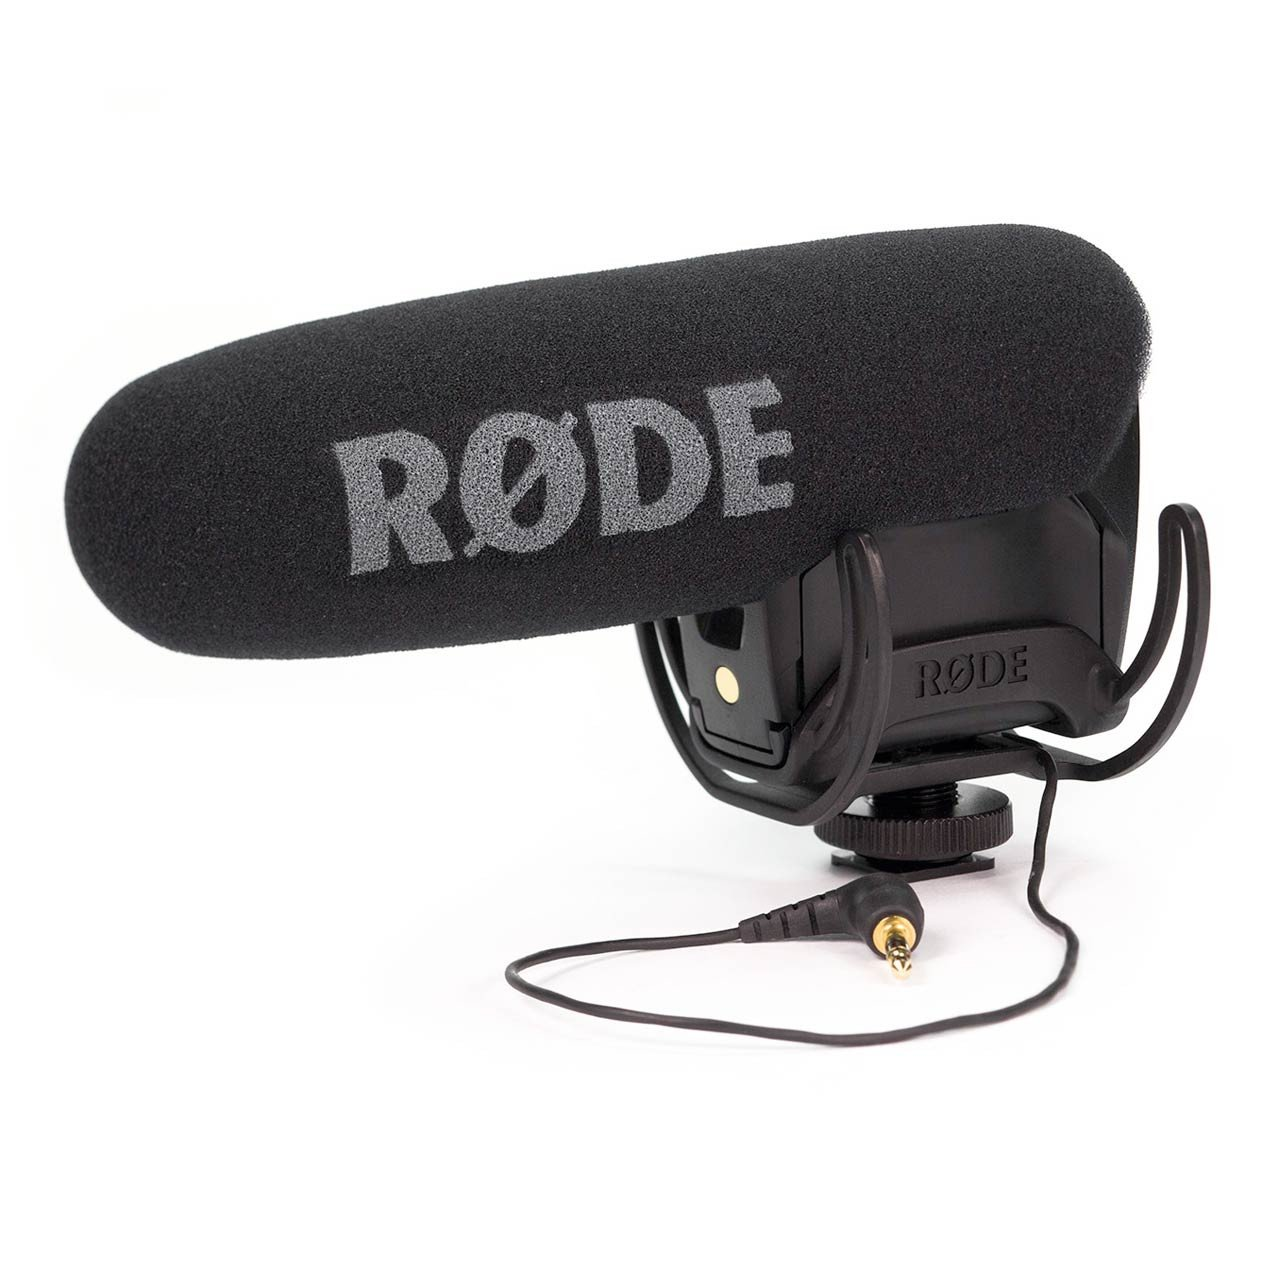 Video Microphones - RODE VideoMic Pro Compact Directional On-camera Microphone